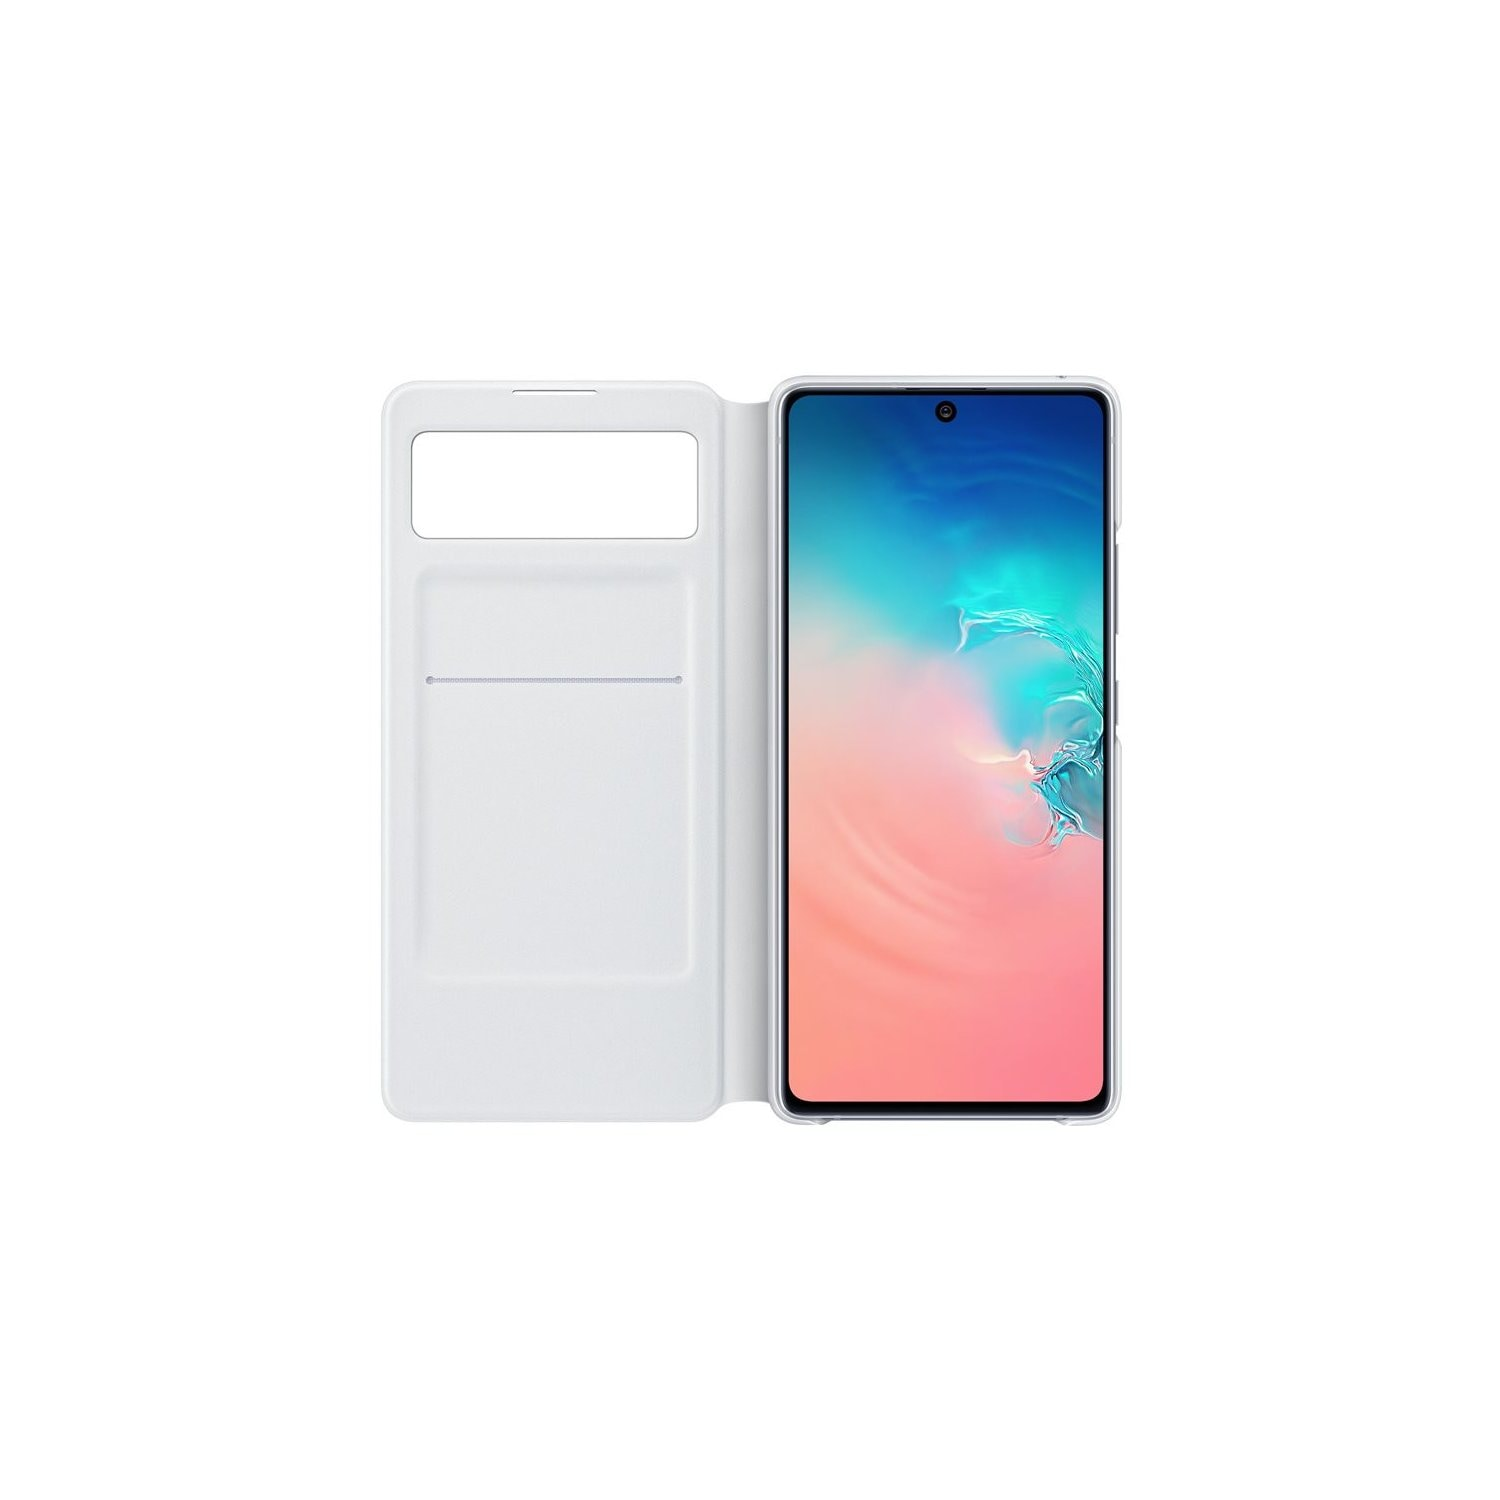 Etui SAMSUNG S-View Wallet Cover do Galaxy S10 Lite Biały EF-EG770PWEGEU